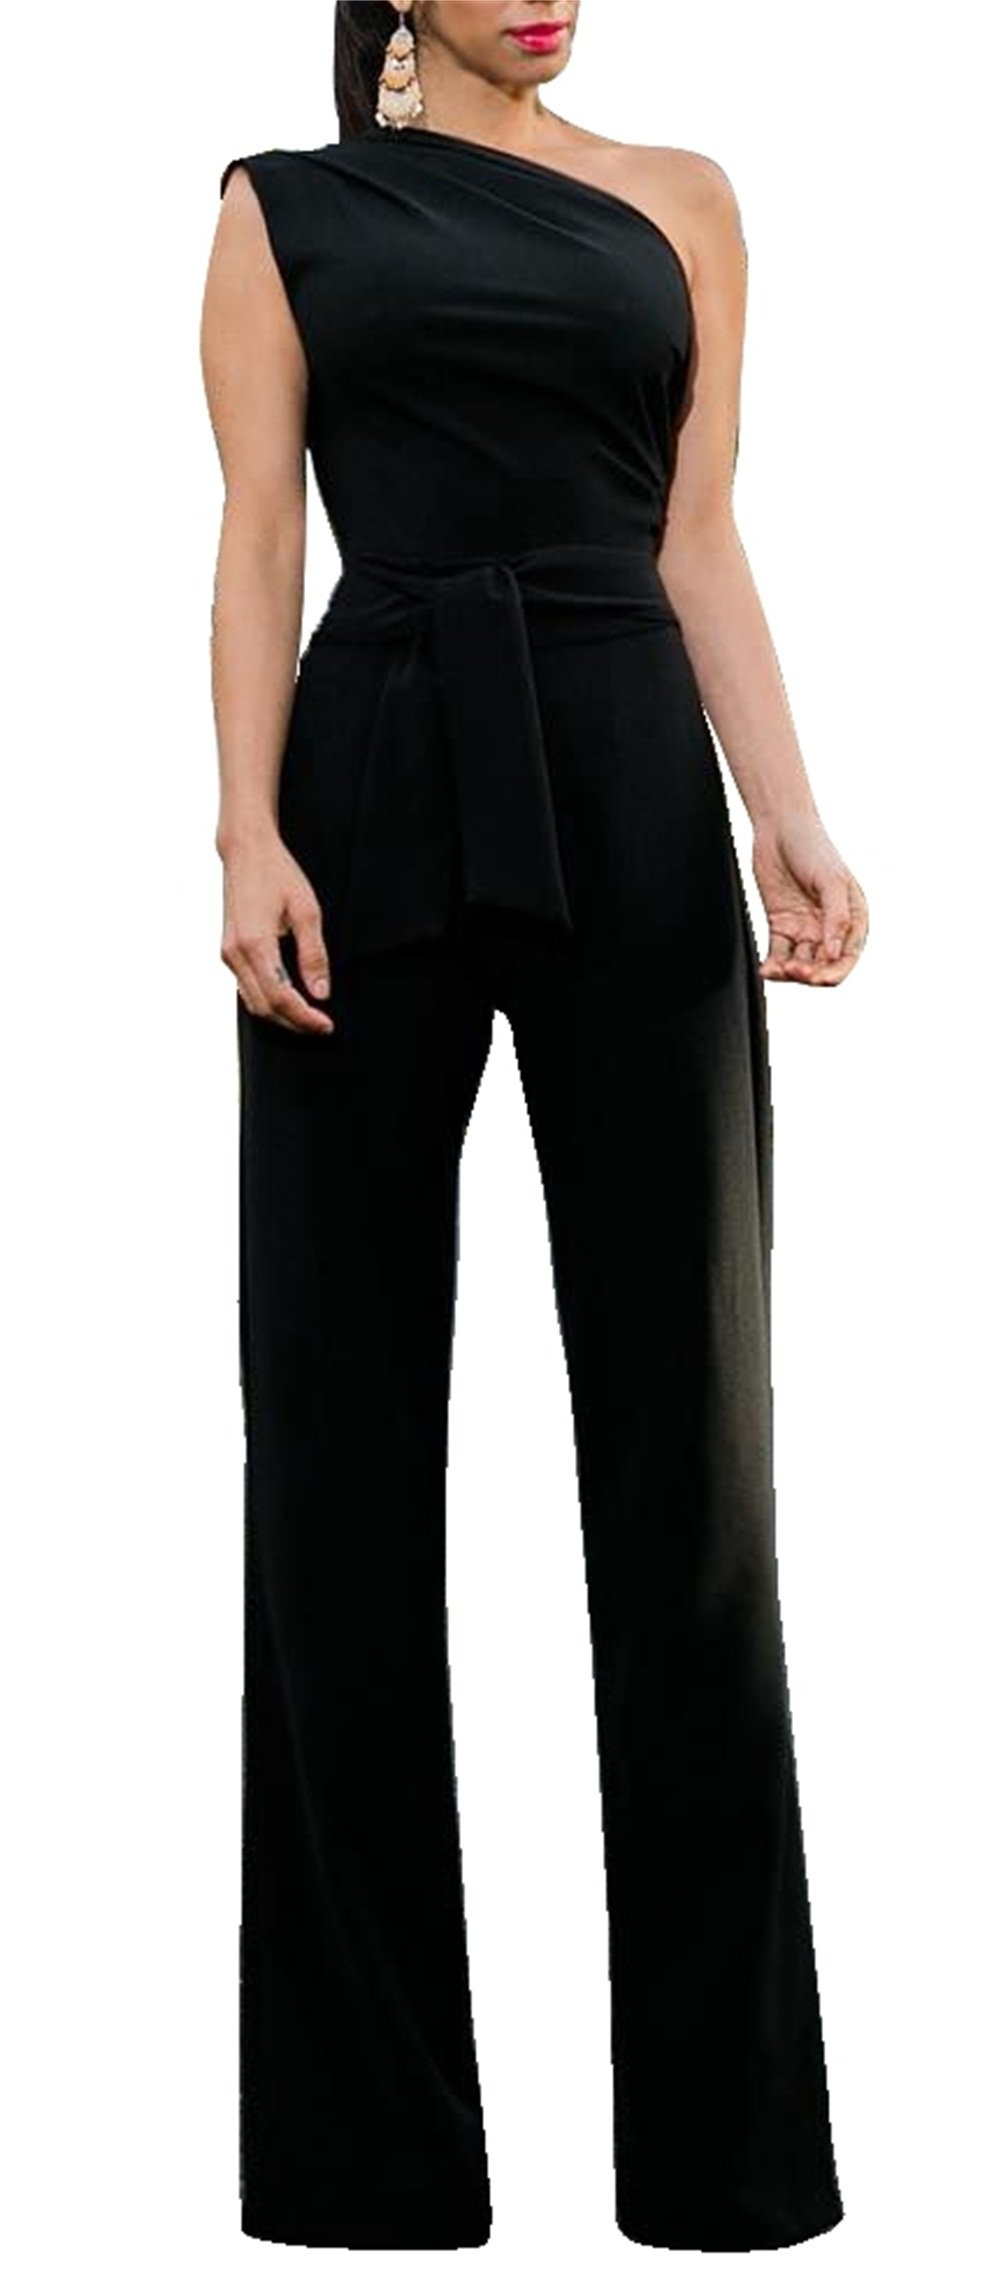 Molisry Women Casual Off One Shoulder Wide Leg High Waisted Long Pants Jumpsuits with Belt